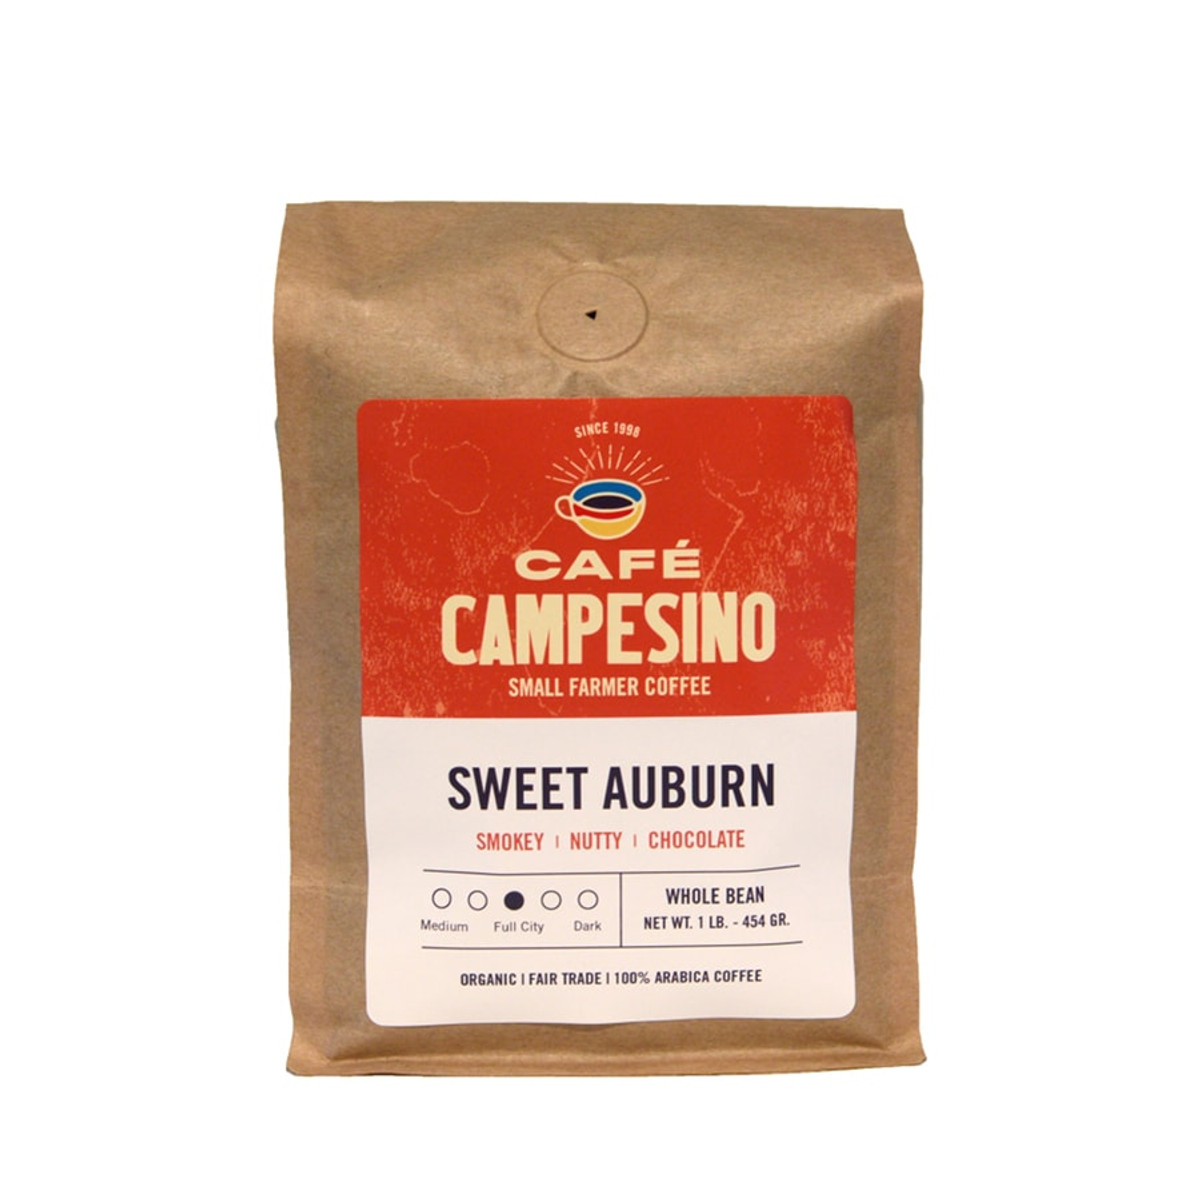 A fair trade, organic, shade-grown blend of Latin American coffees named for Atlanta's Historic Sweet Auburn neighborhood with a well-balanced with a smoky aroma, nutty, chocolate fragrance and flavor, low acidity, and a sweet aftertaste.